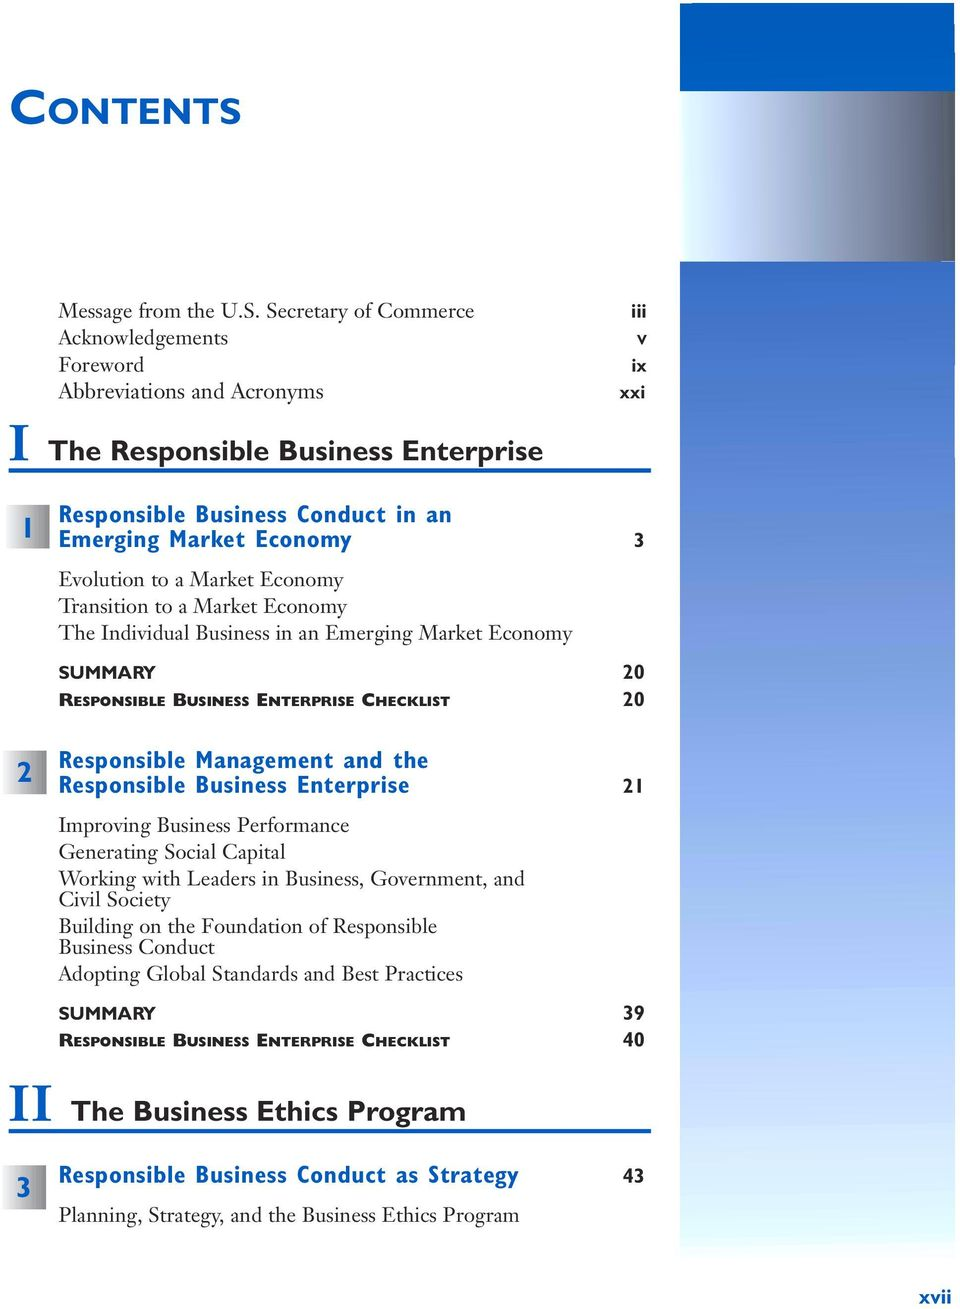 Secretary of Commerce Acknowledgements Foreword Abbreviations and Acronyms iii V ix xxi I The Responsible Business Enterprise 1 2 Responsible Business Conduct in an Emerging Market Economy 3